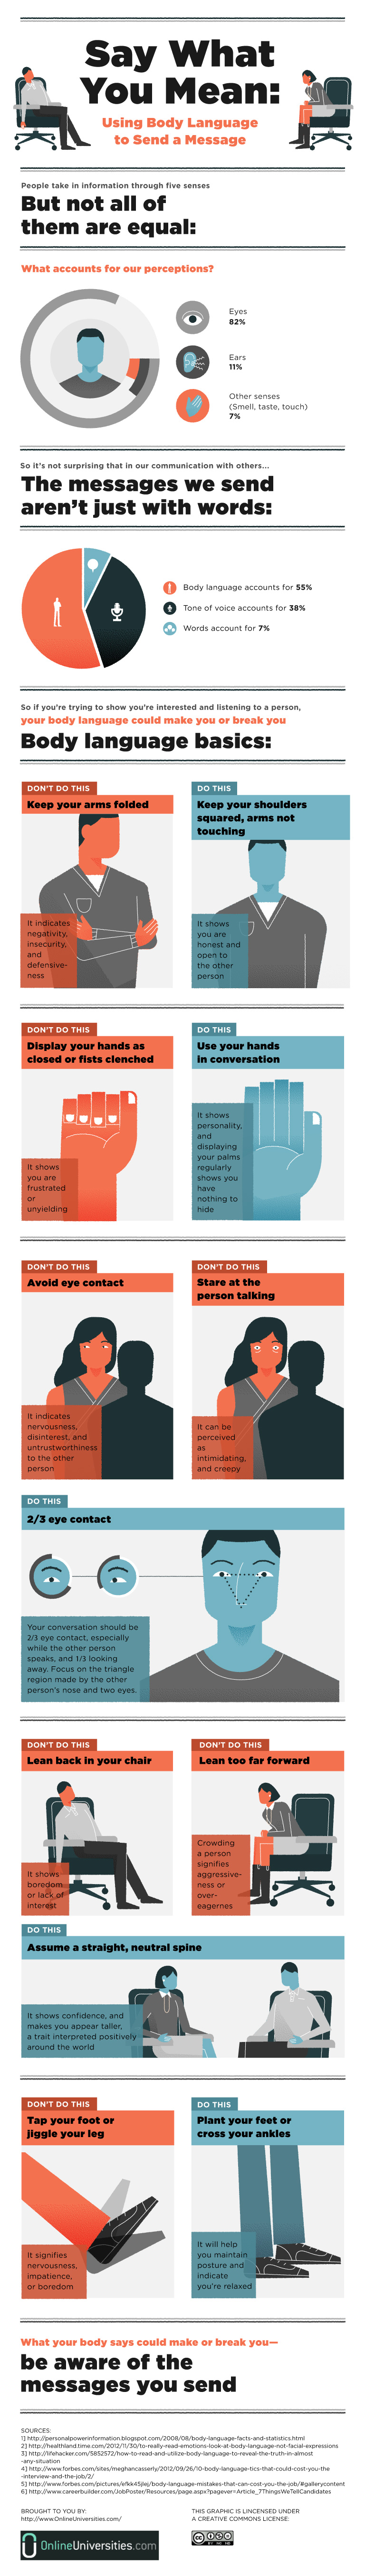 say-what-you-mean-infographic